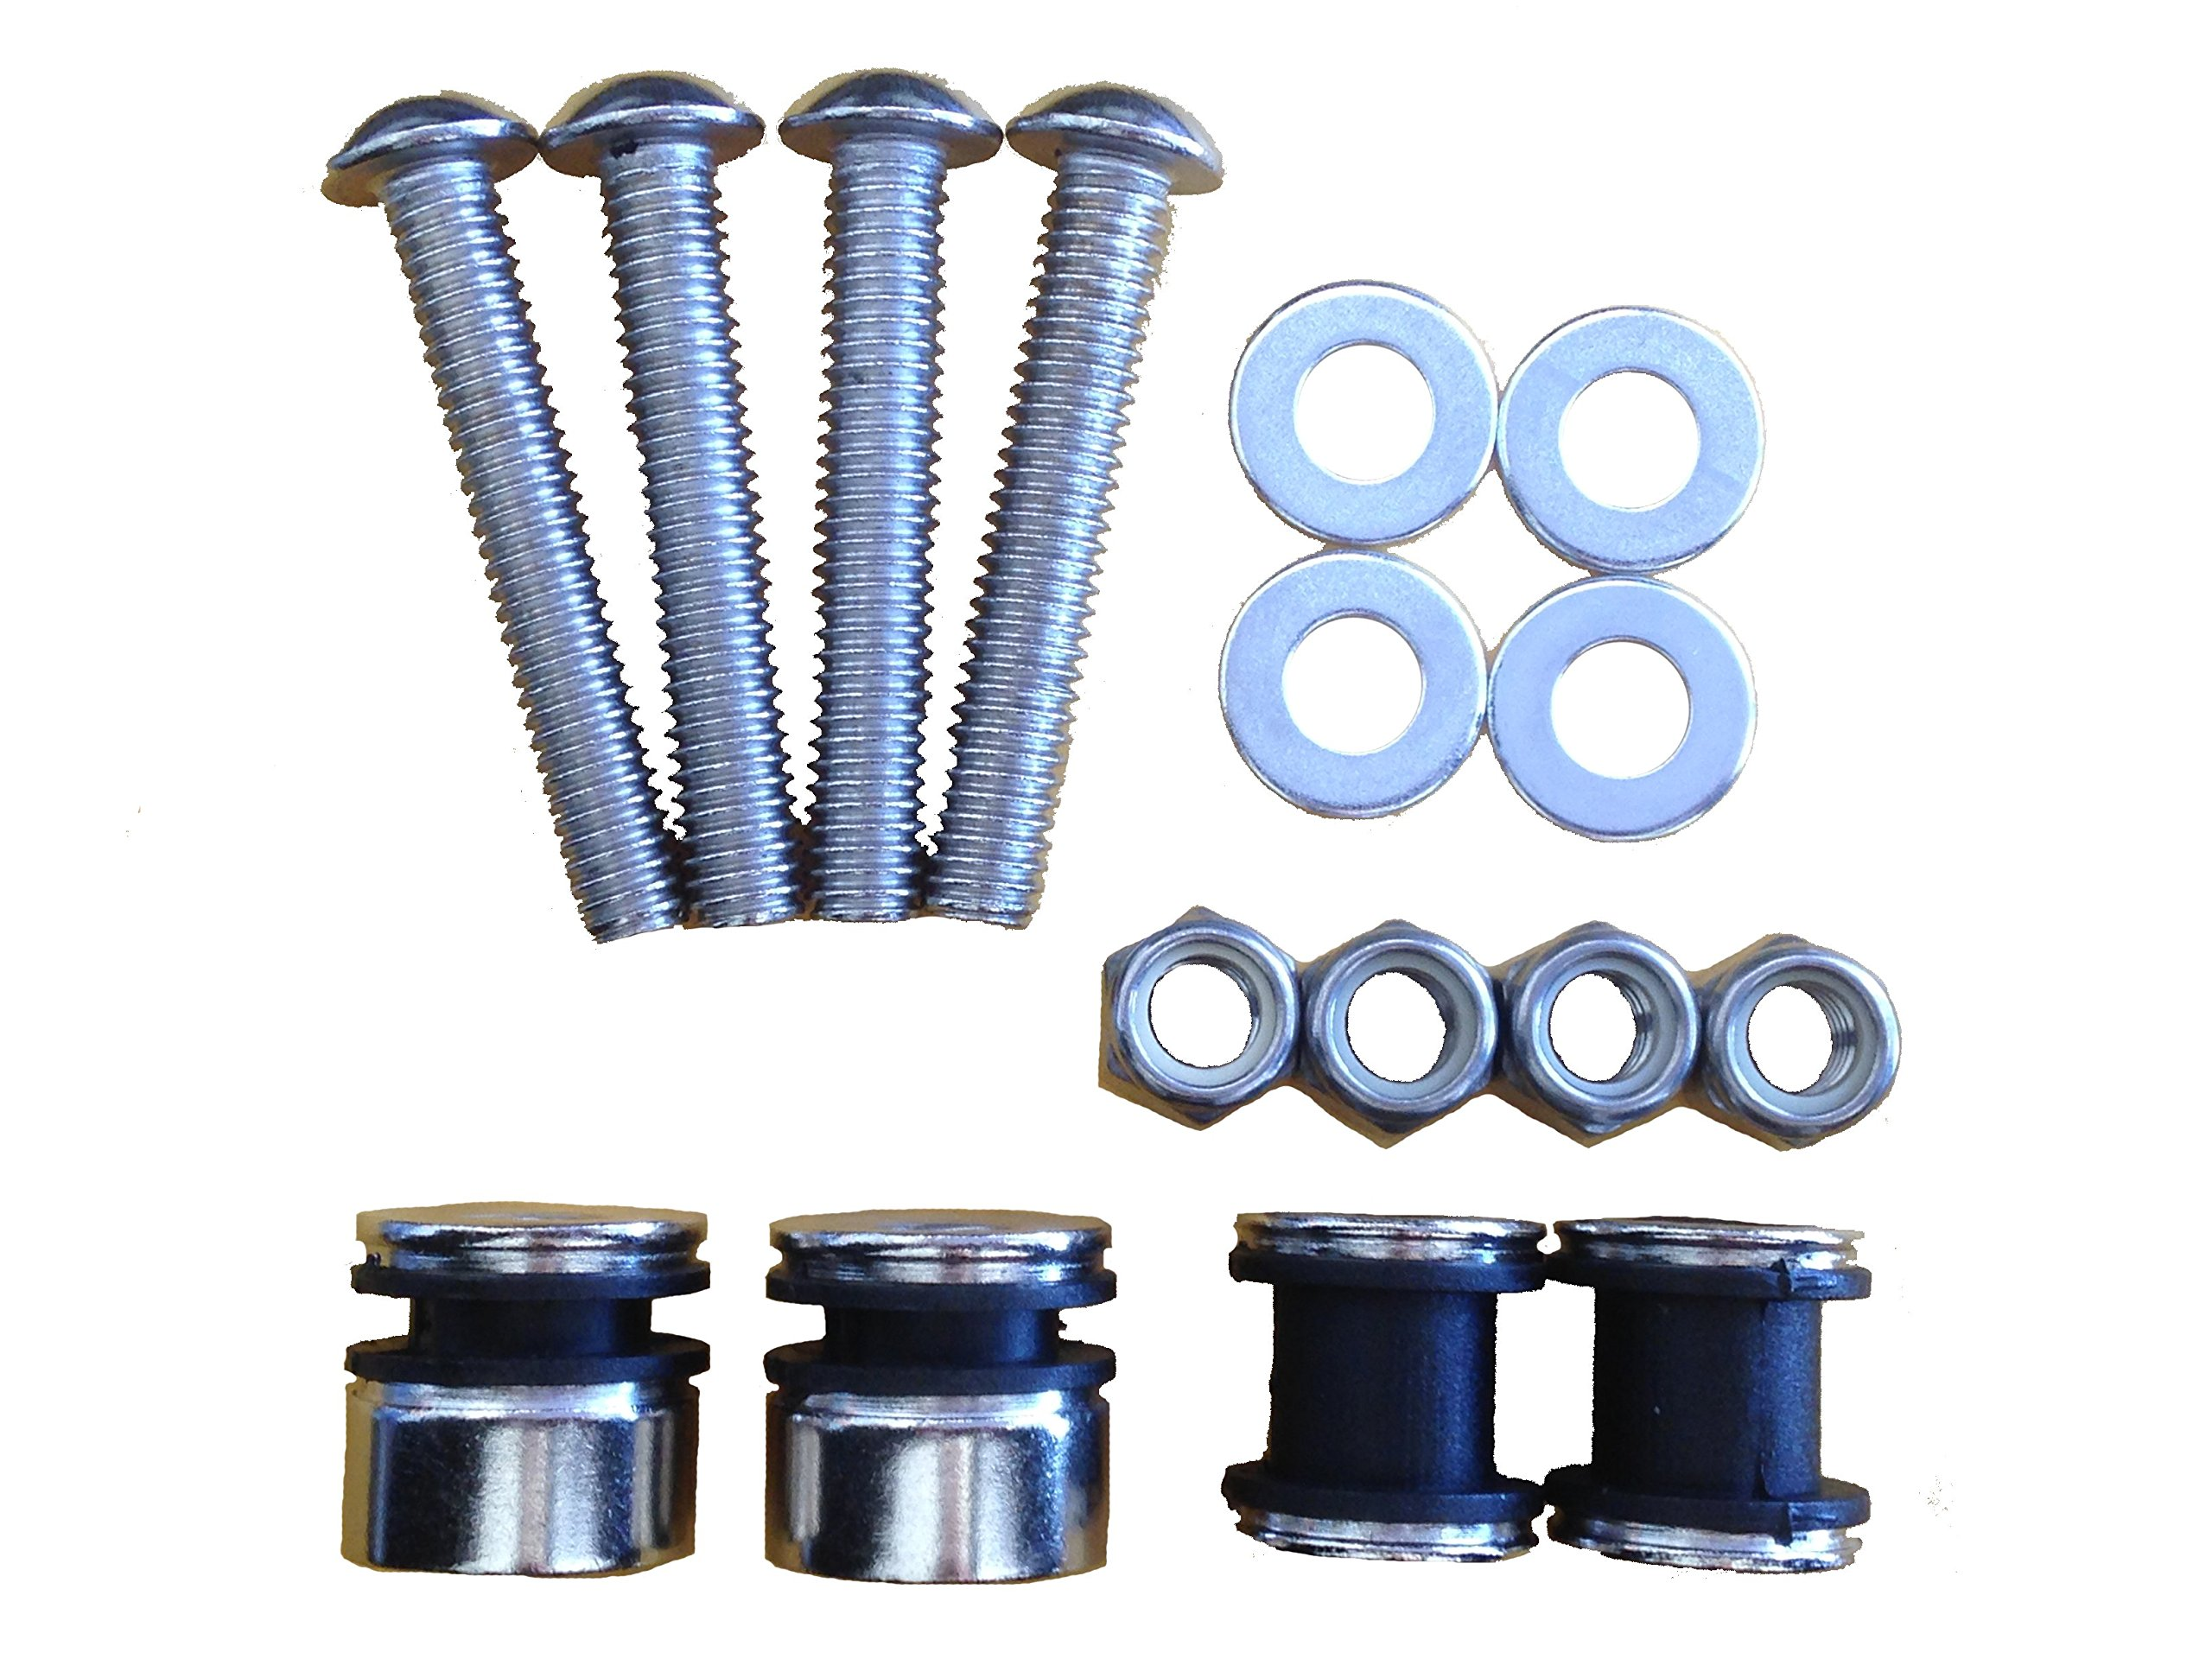 4-Point Docking Hardware Kit for 1984-1999 Harley Davidson Softail Detachable Accessories